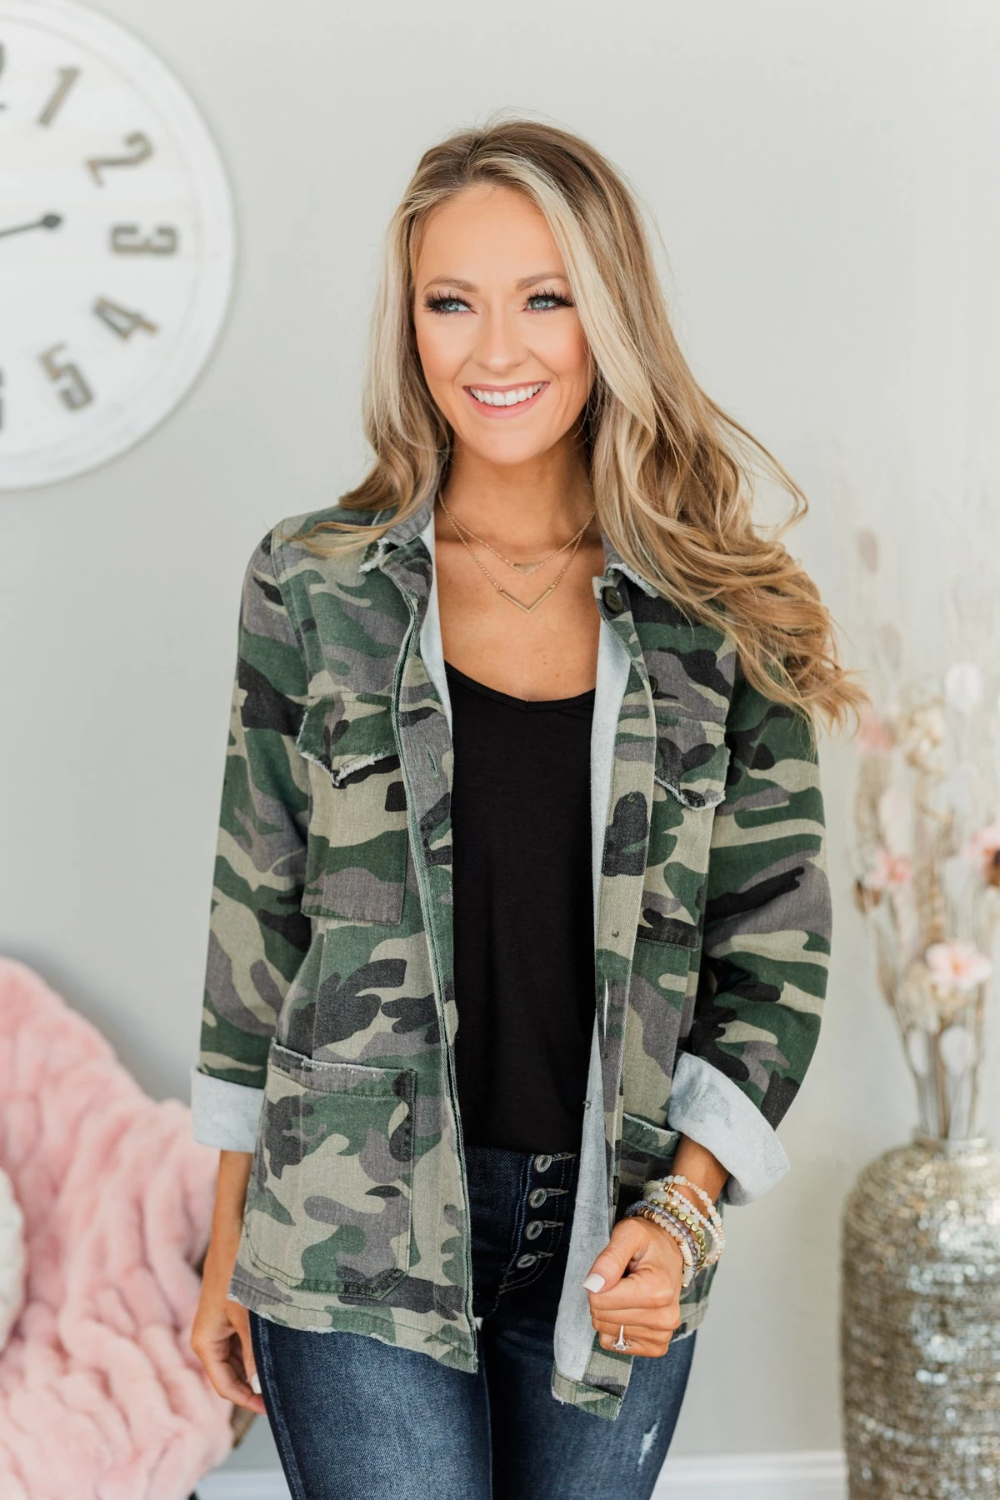 Never Give Up Distressed Denim Jacket Camo In 2021 Distressed Denim Jacket Distressed Denim Camo Jacket Outfit [ 1500 x 1000 Pixel ]